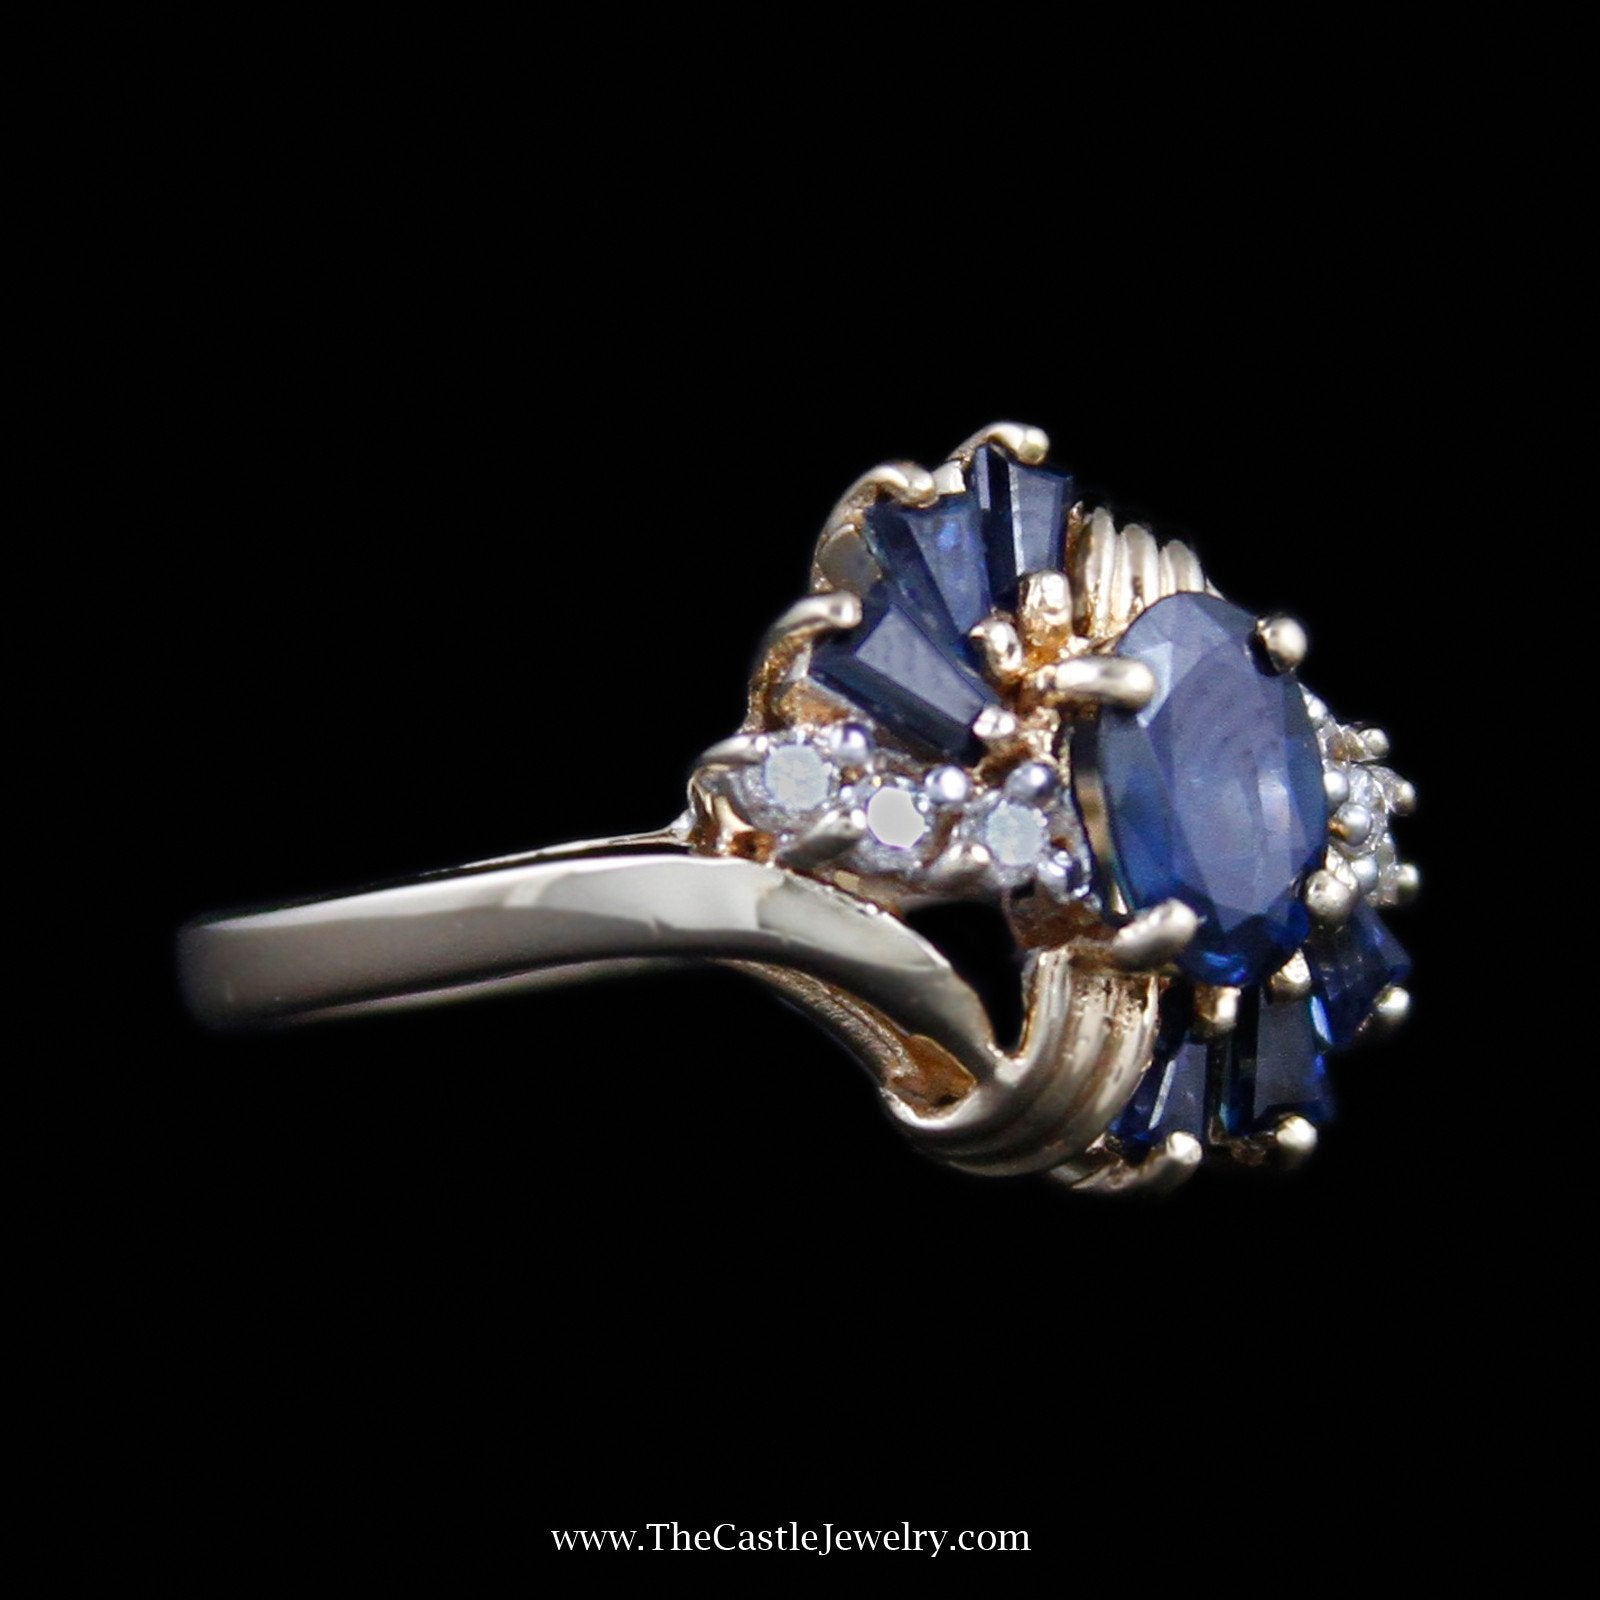 Beautiful Oval Cut Sapphire Ring with Baguette Sapphire & Round Diamond Sides-2